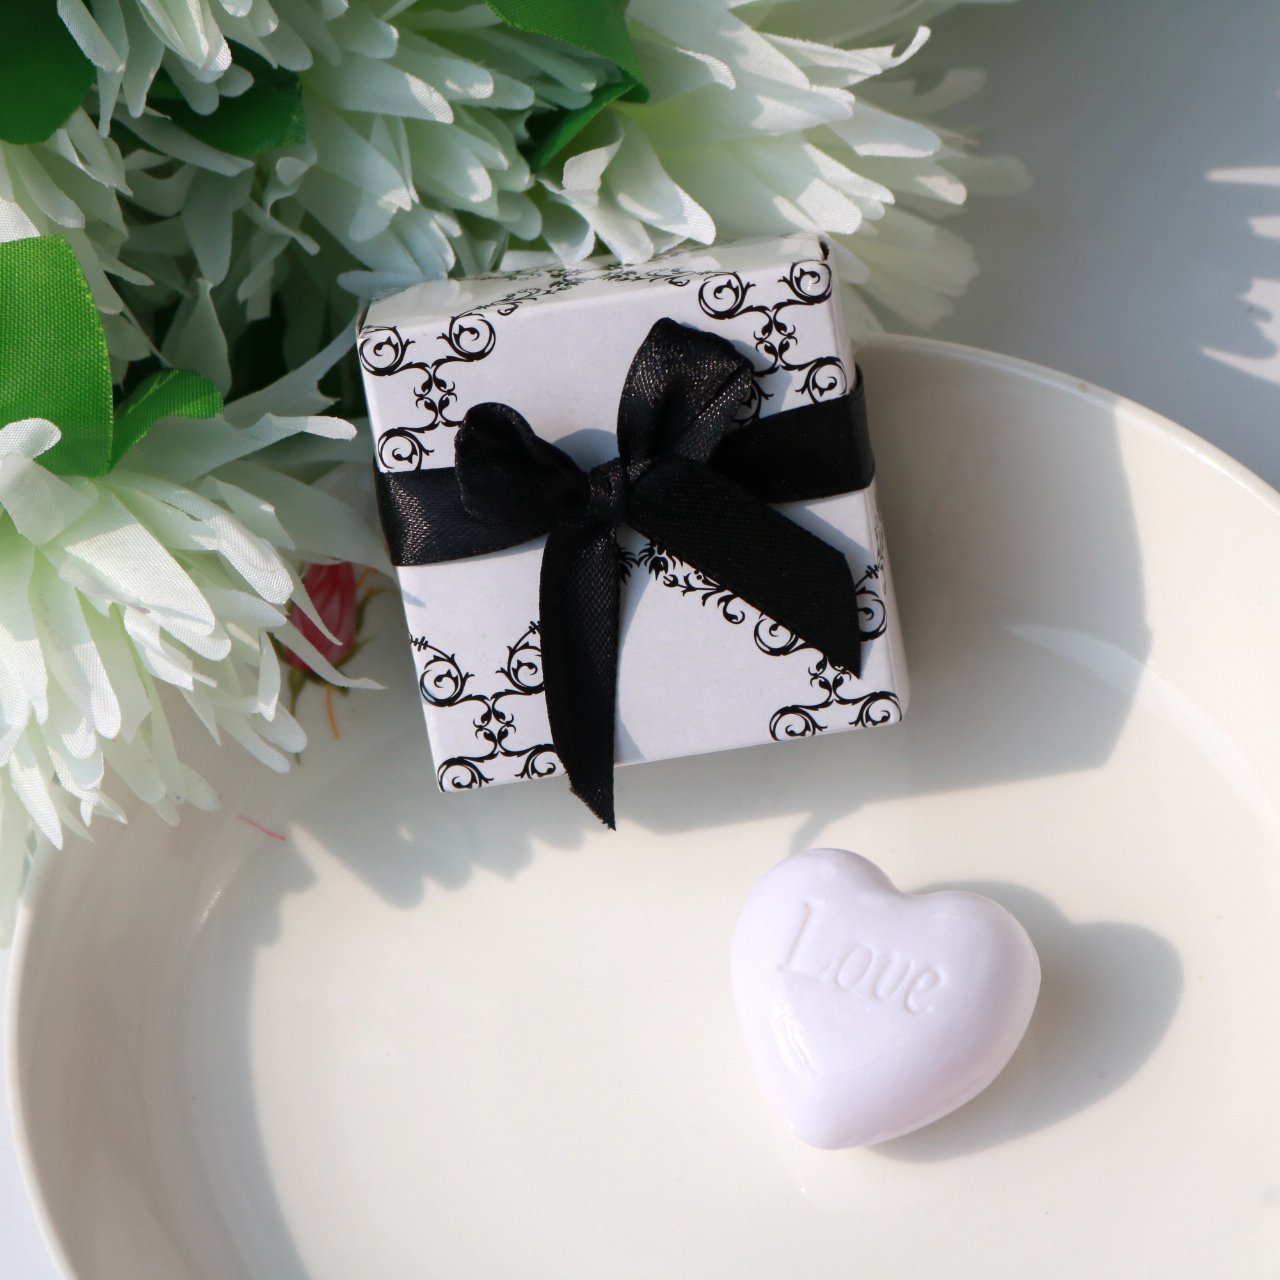 AiXiAng Cute Mini 24 Pieces Heart Soap for Wedding Soap Favors and Gifts or Baby Shower Soap Favors by AiXiAng